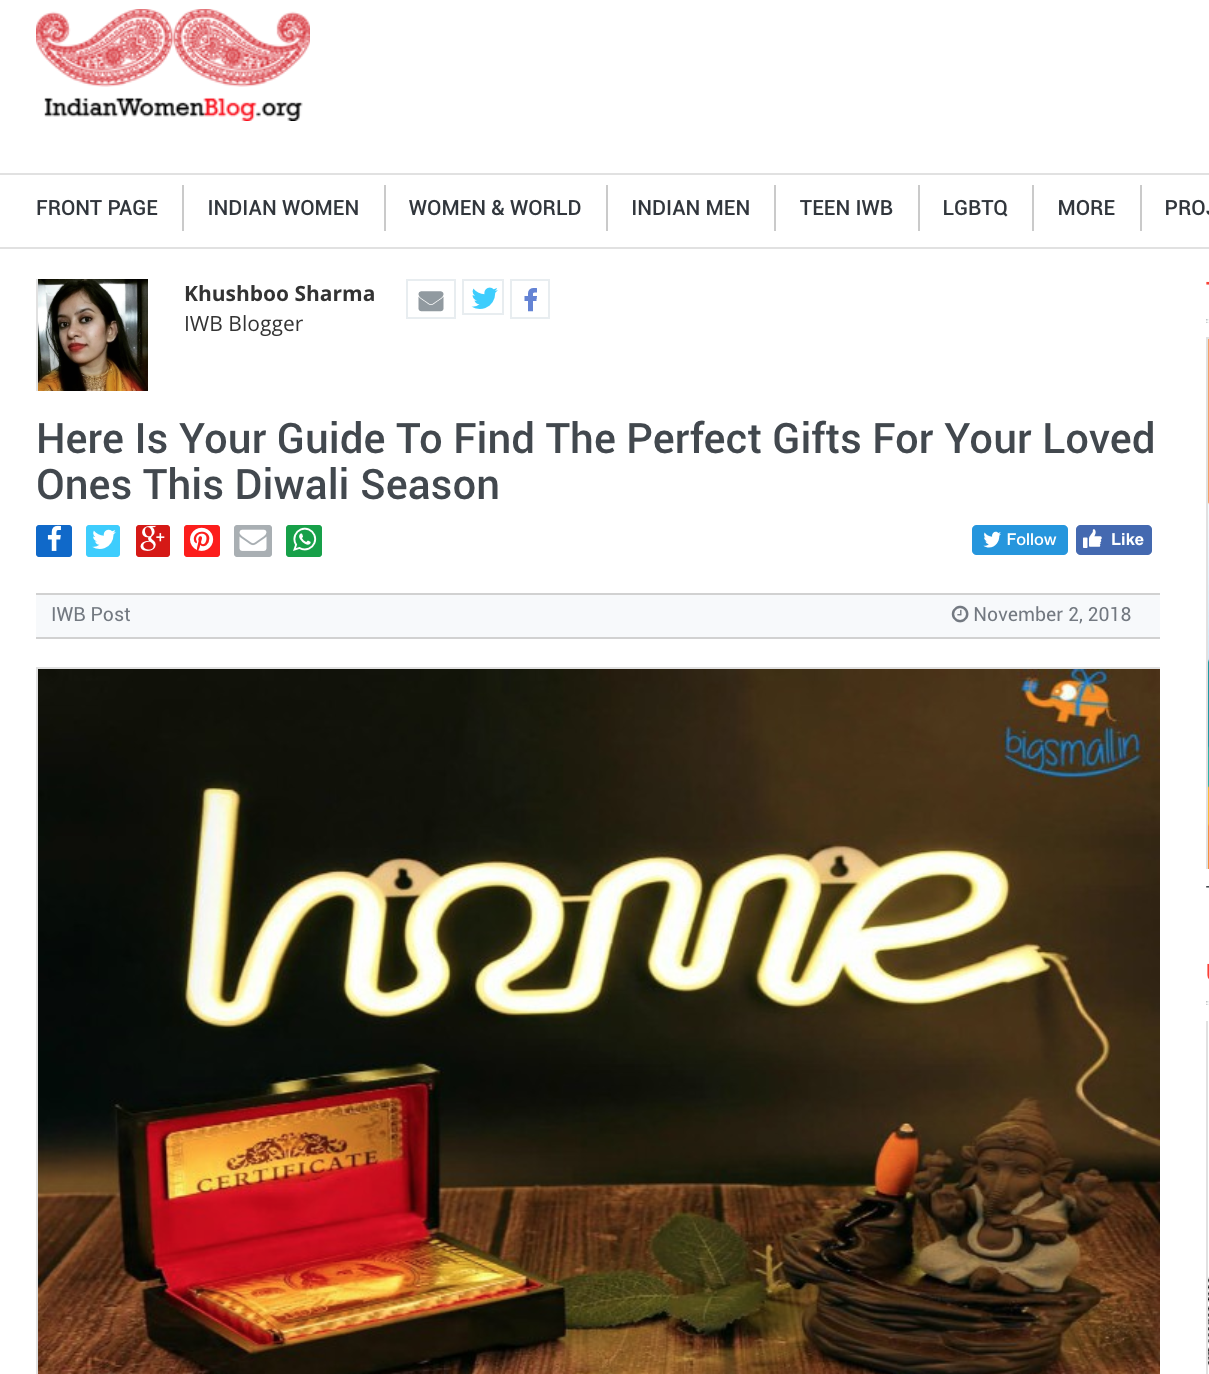 Indian Women Blog | Here Is Your Guide To Find The Perfect Gifts For Your Loved Ones This Diwali Season